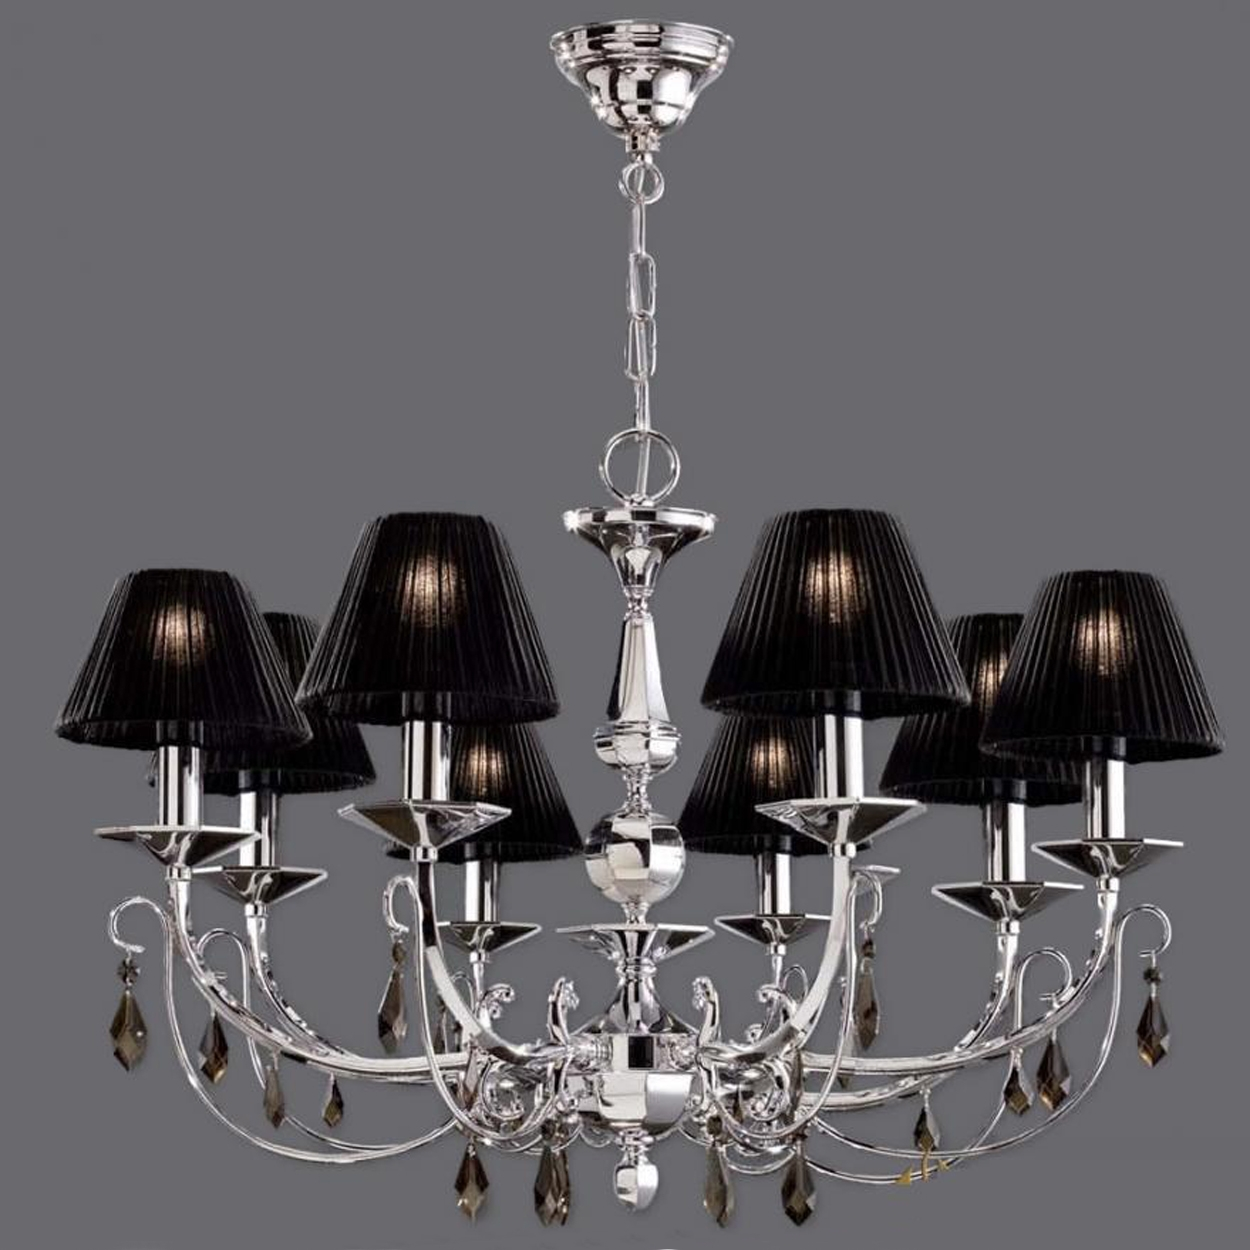 The Attractive Types Of Chandelier Lamp Shades Lgilab Inside Chandelier Lamp Shades (Image 20 of 25)